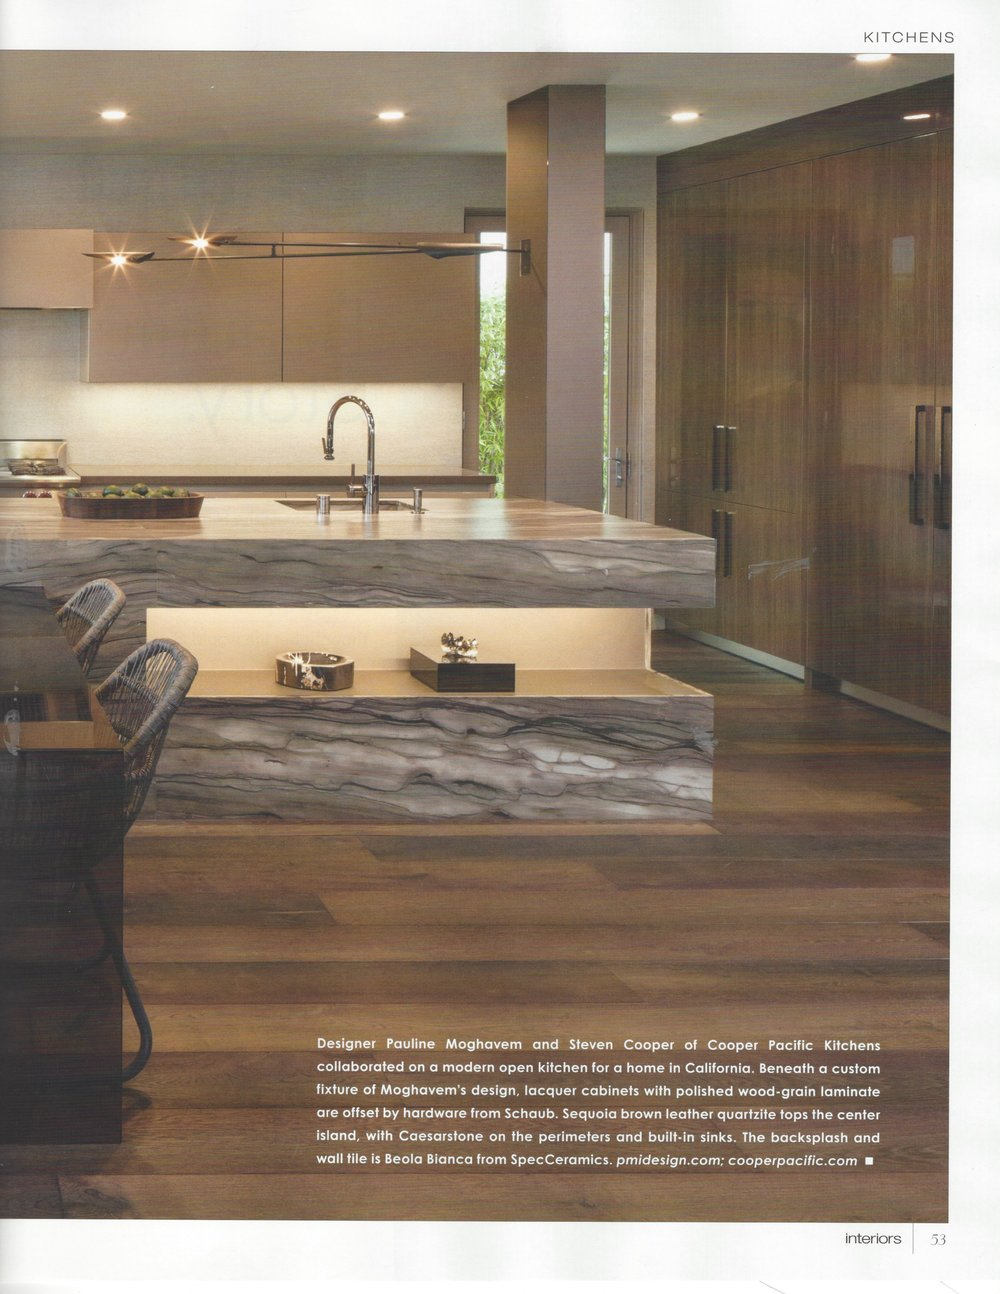 For The Digital Edition, Please See: Http://interiorsmagazine.com/